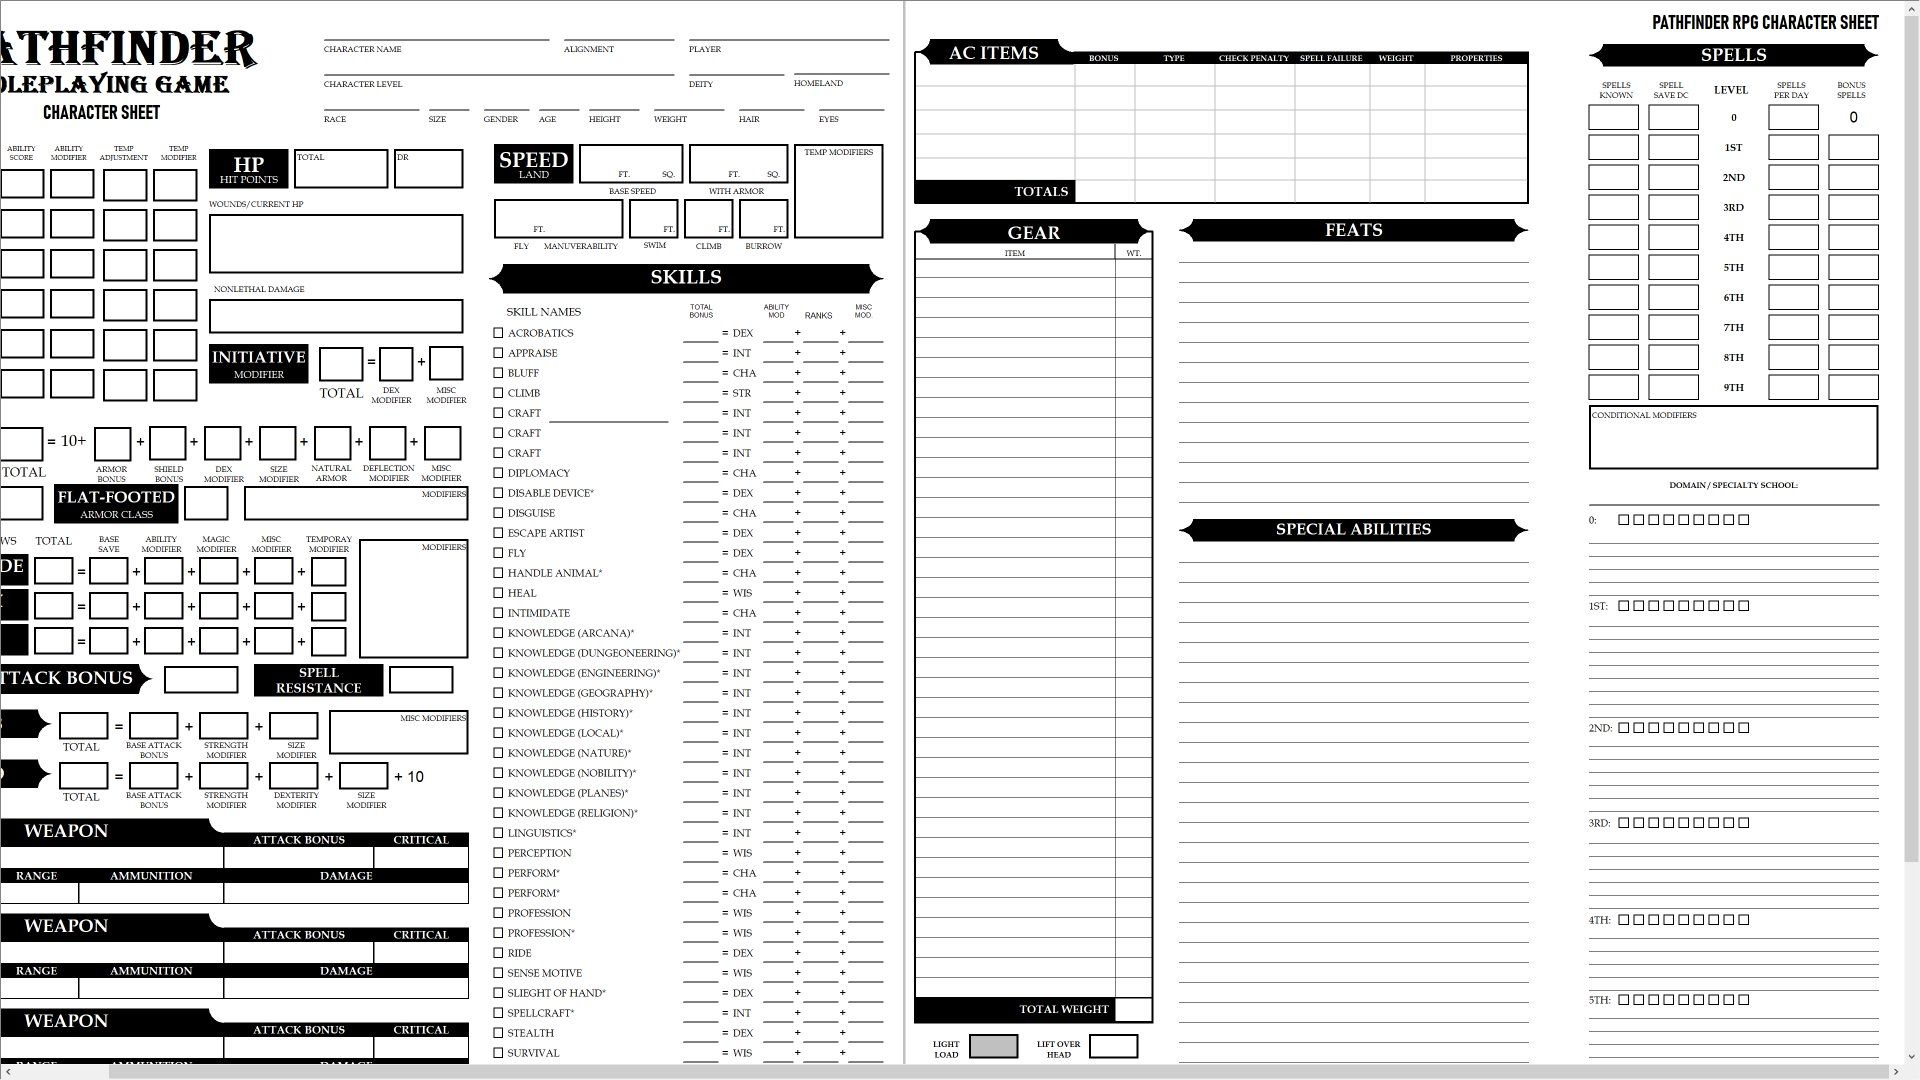 image relating to Pathfinder Printable Character Sheet identified as Pattern Pathfinder individuality sheet. SheetScribe is currently being employed